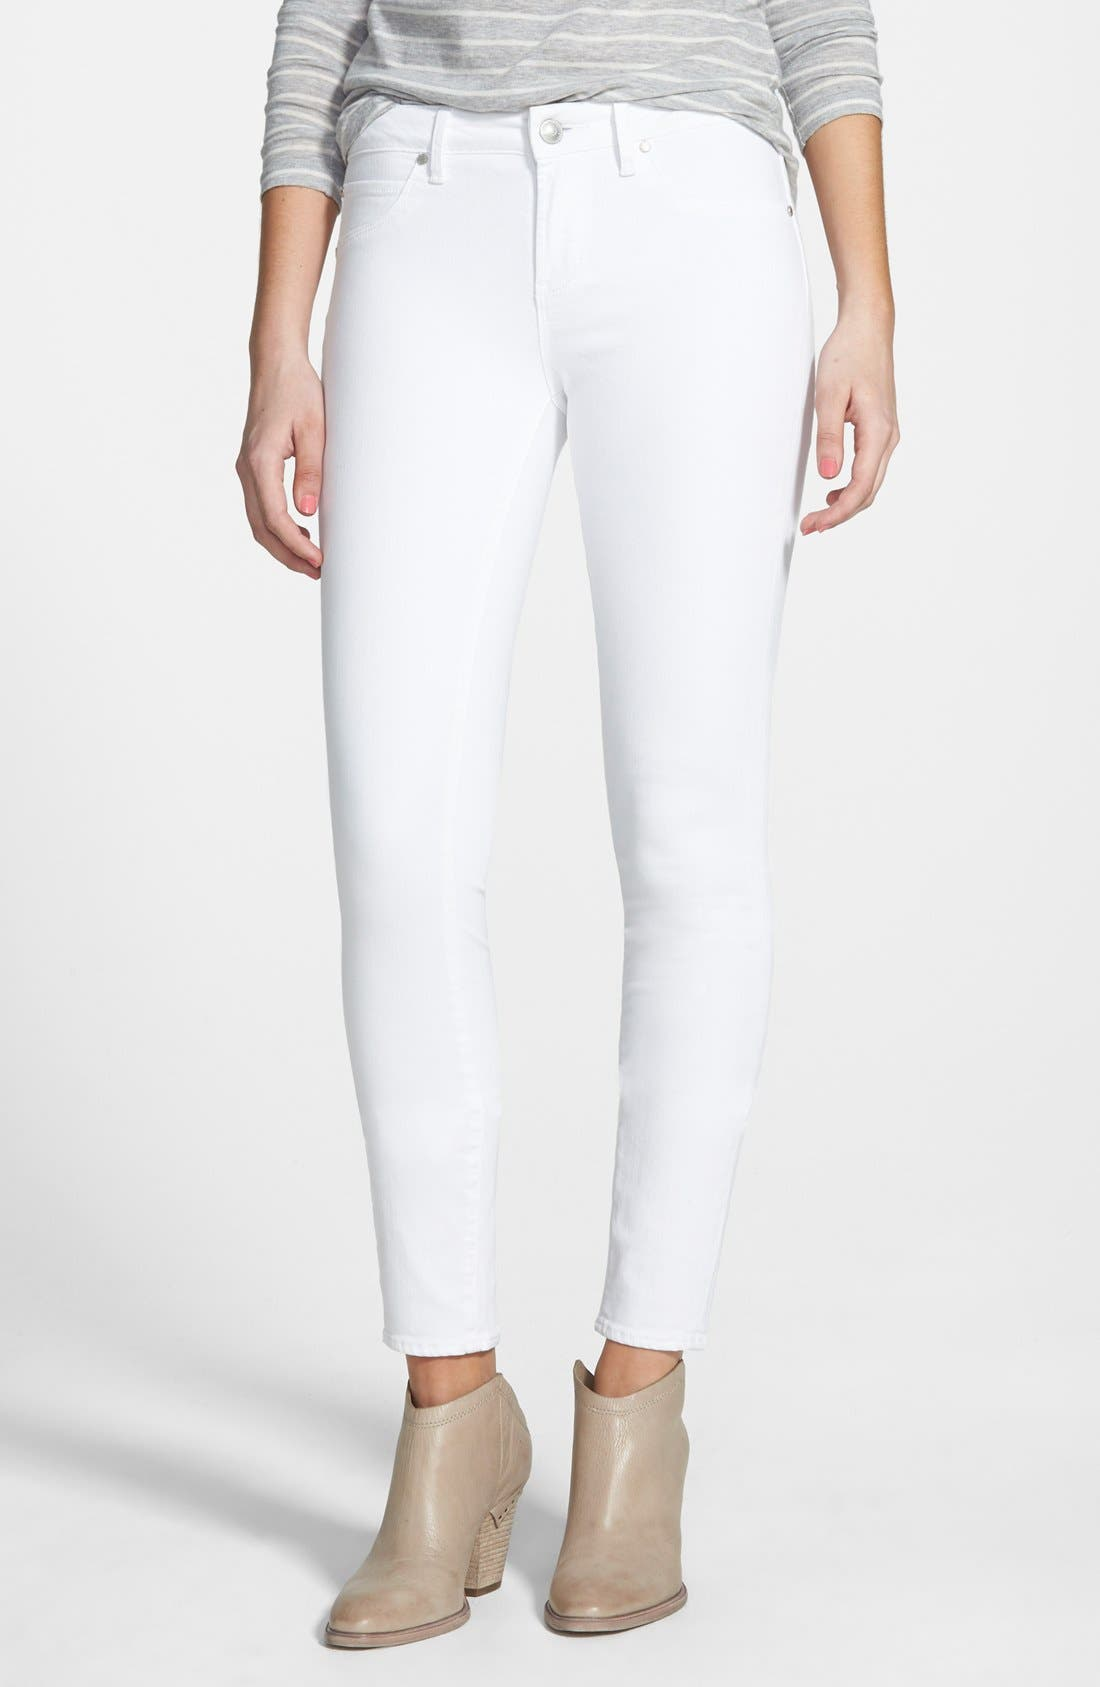 Main Image - Articles of Society 'Sarah' Skinny Jeans (White)